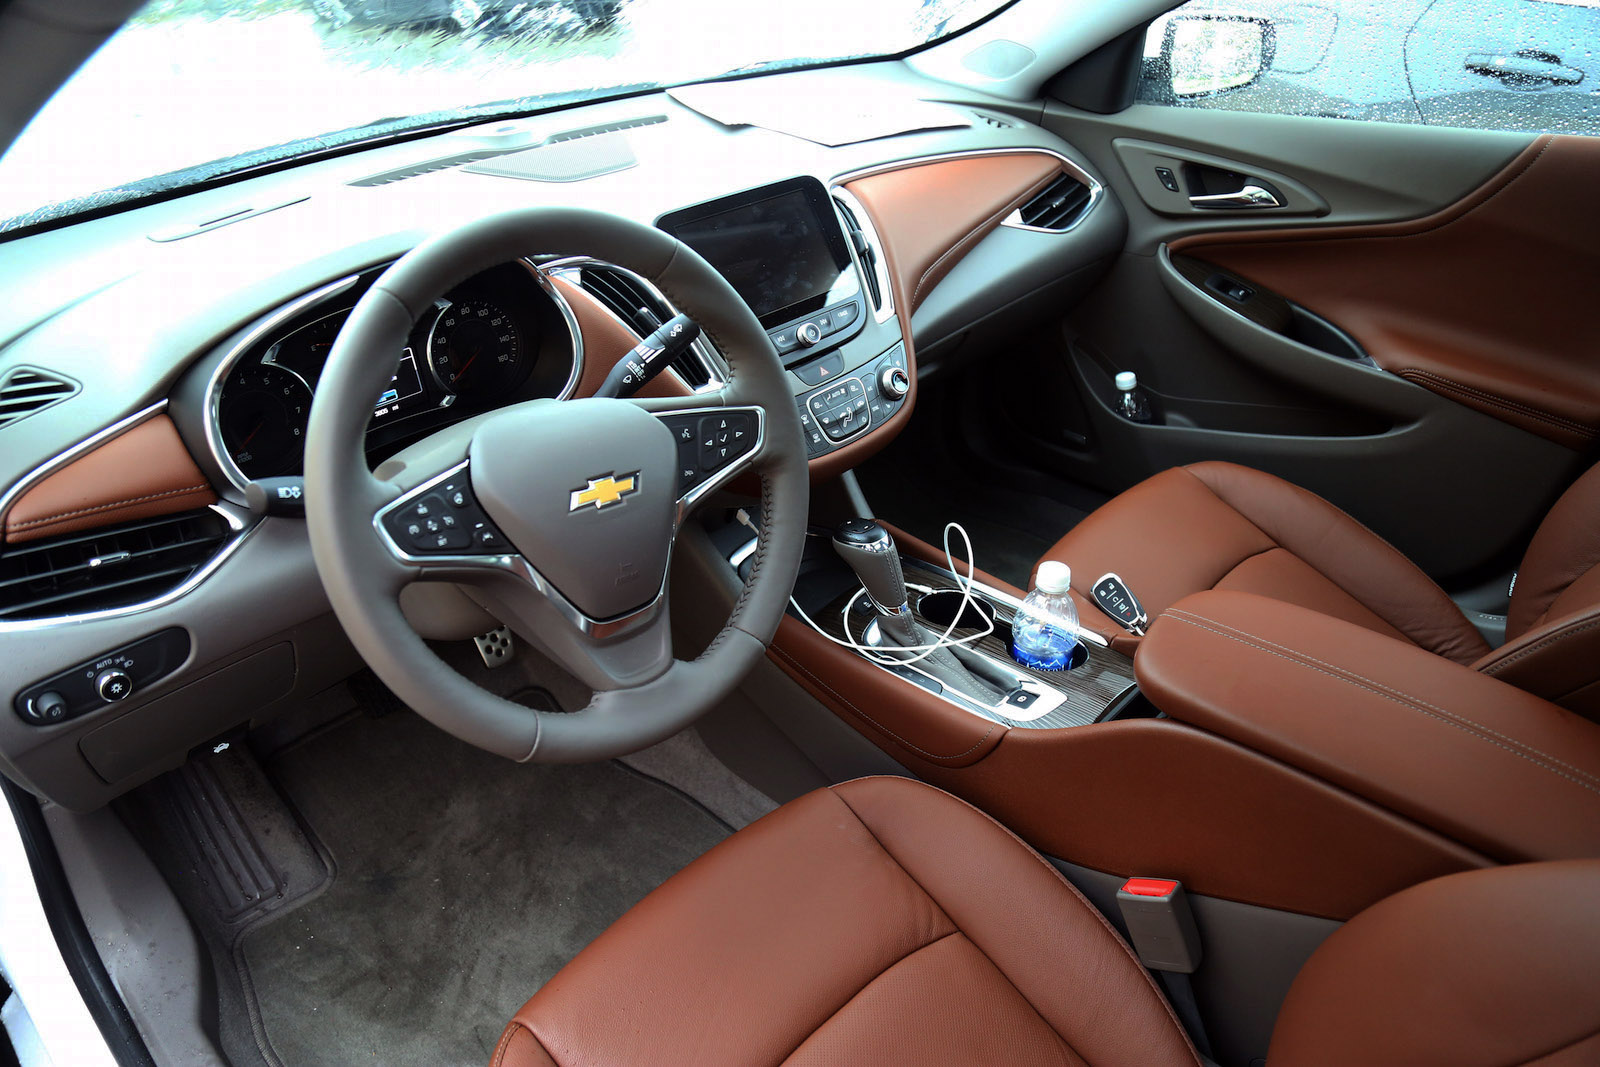 chevrolet malibu interior 2019 chevrolet malibu interior premier rs youtube oil reset blog. Black Bedroom Furniture Sets. Home Design Ideas